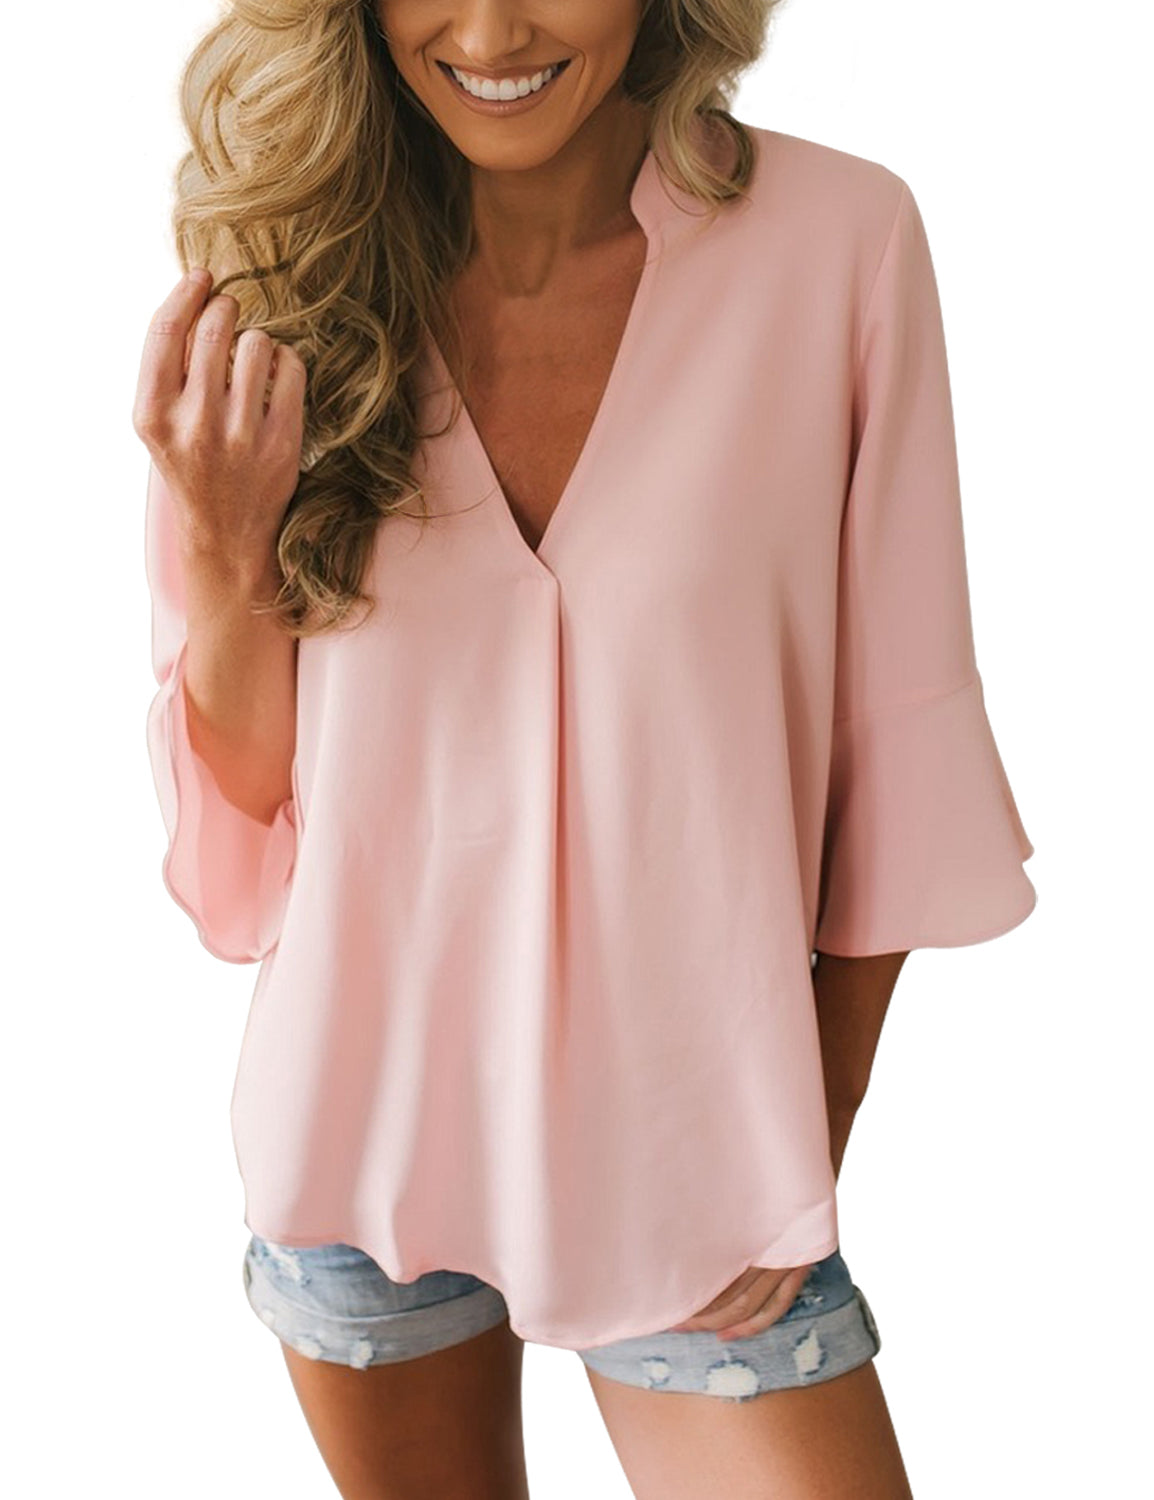 34c9e3596 Casual 34 Bell Sleeve V Neck Loose Chiffon Tops Blouses Shirts